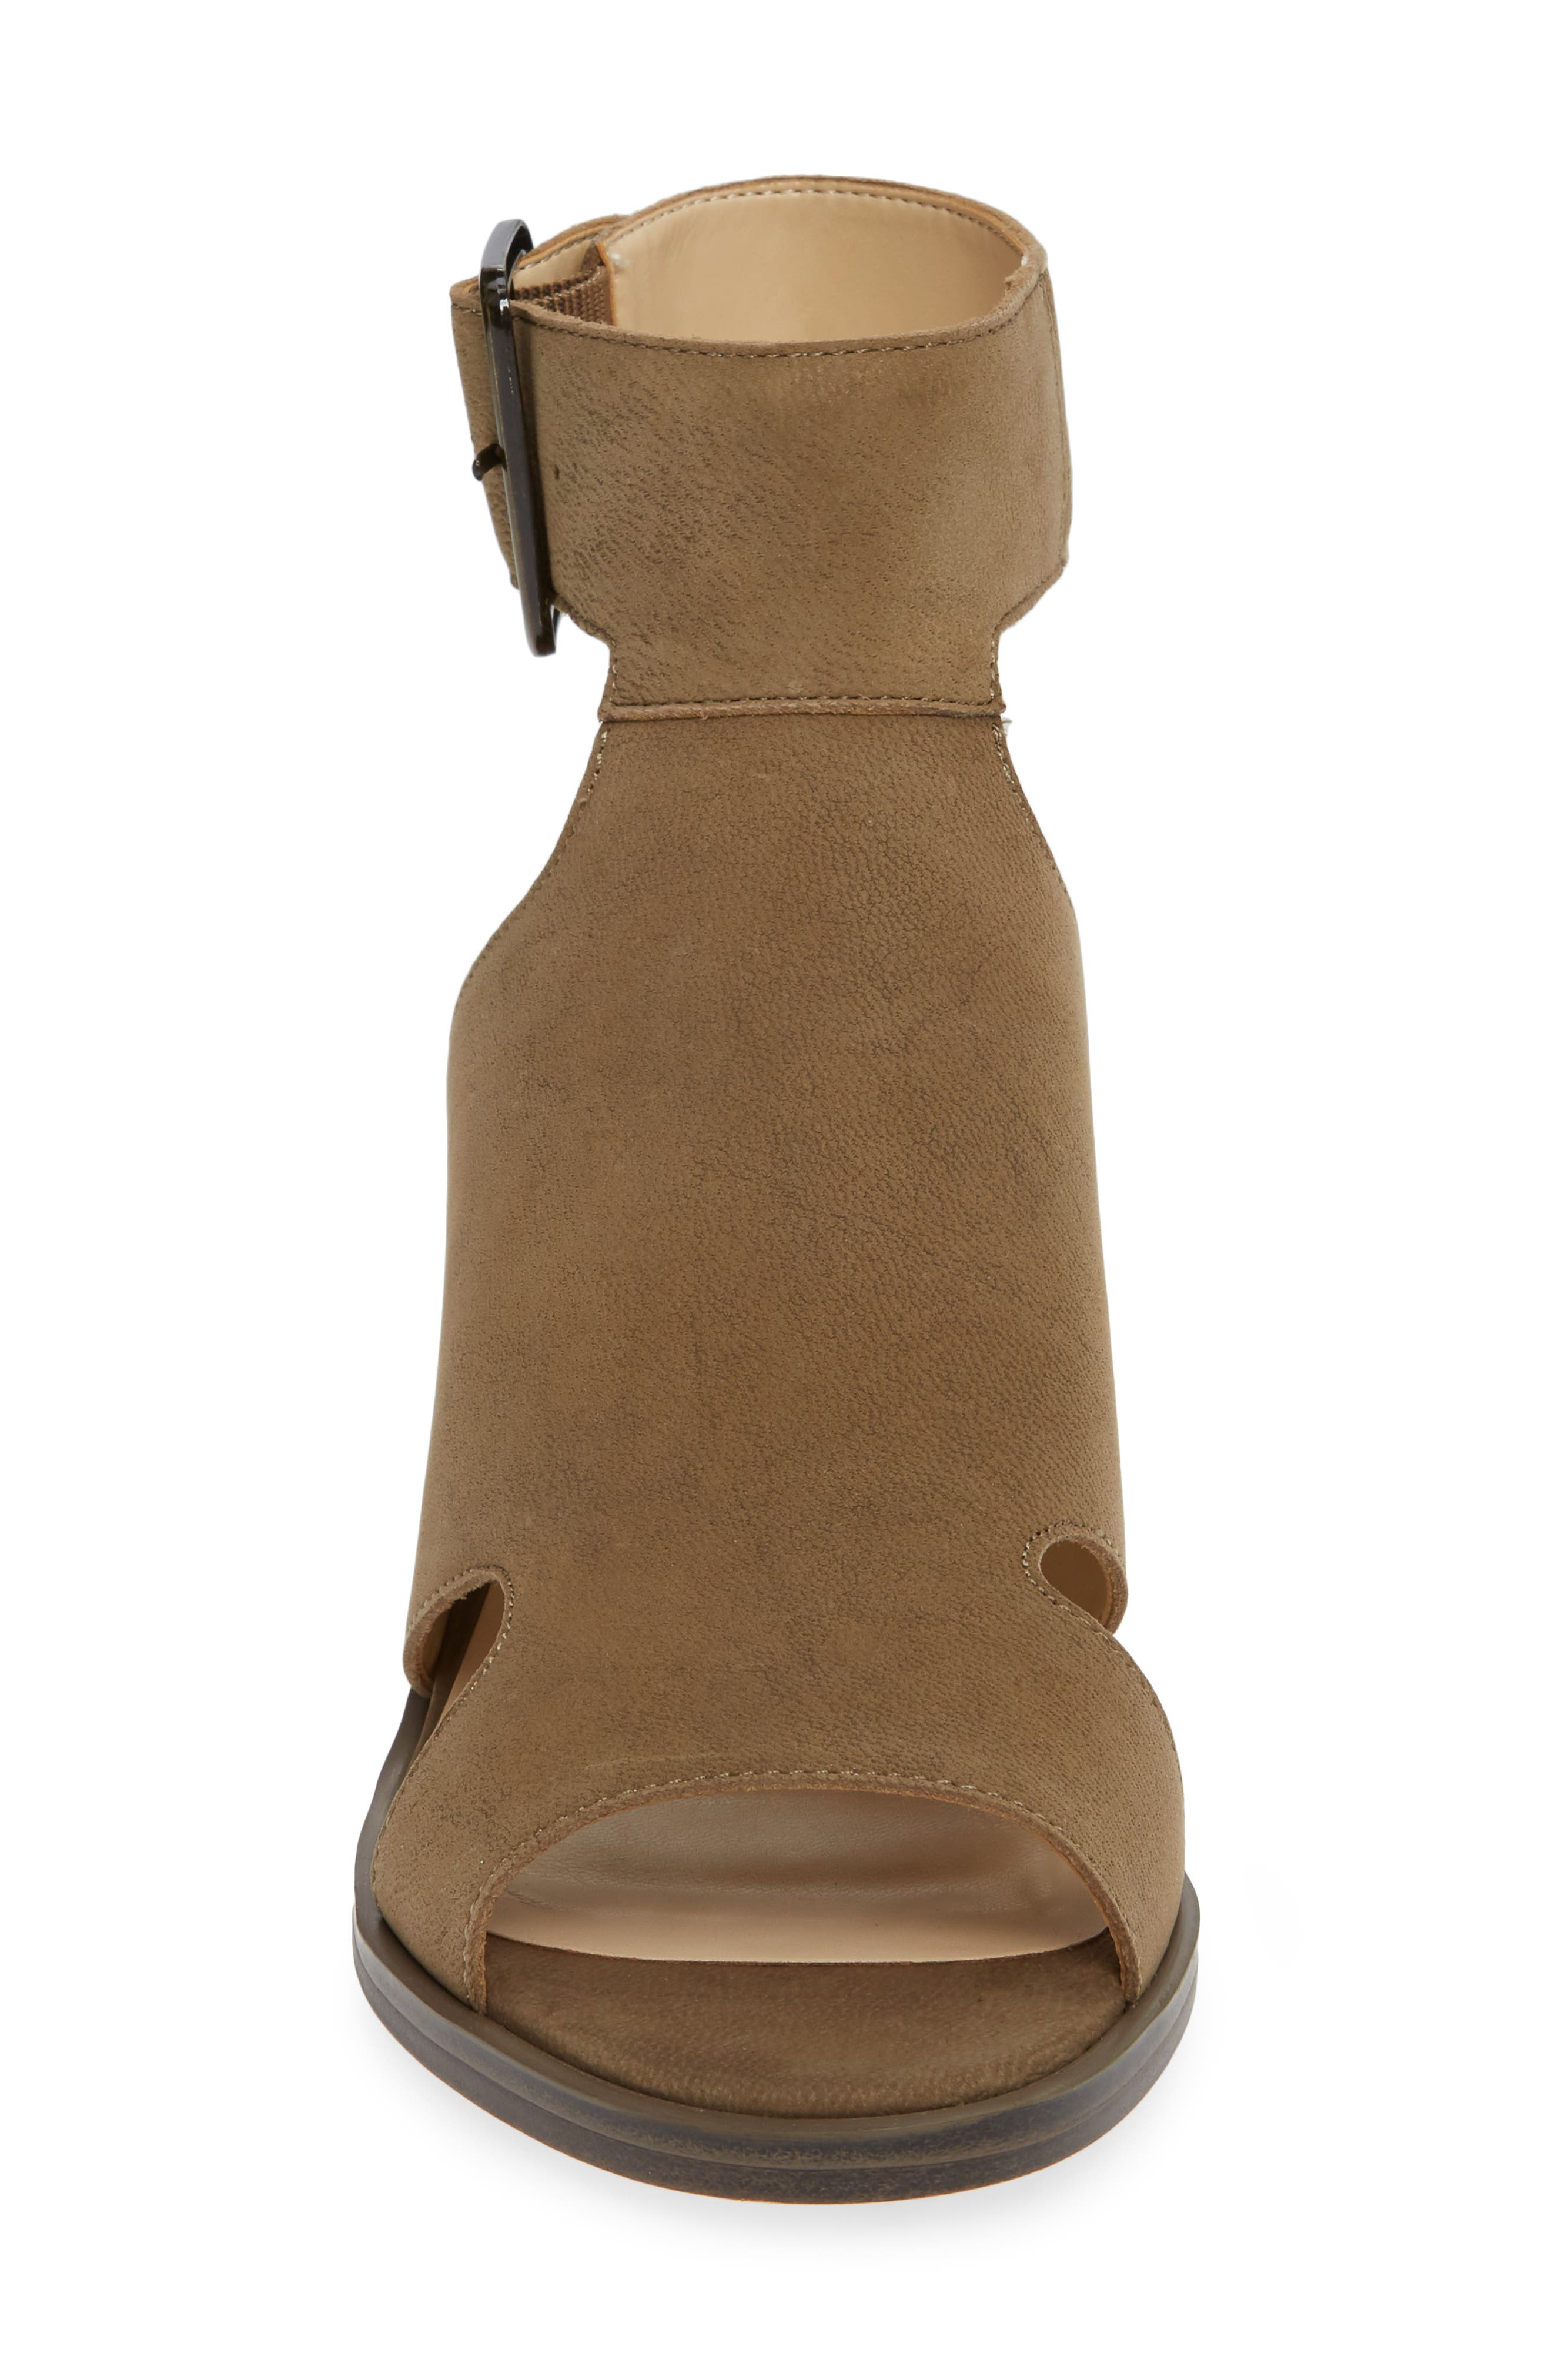 Tally Ankle Cuff Sandal,                             Alternate thumbnail 4, color,                             ANTIQUE GREEN NUBUCK